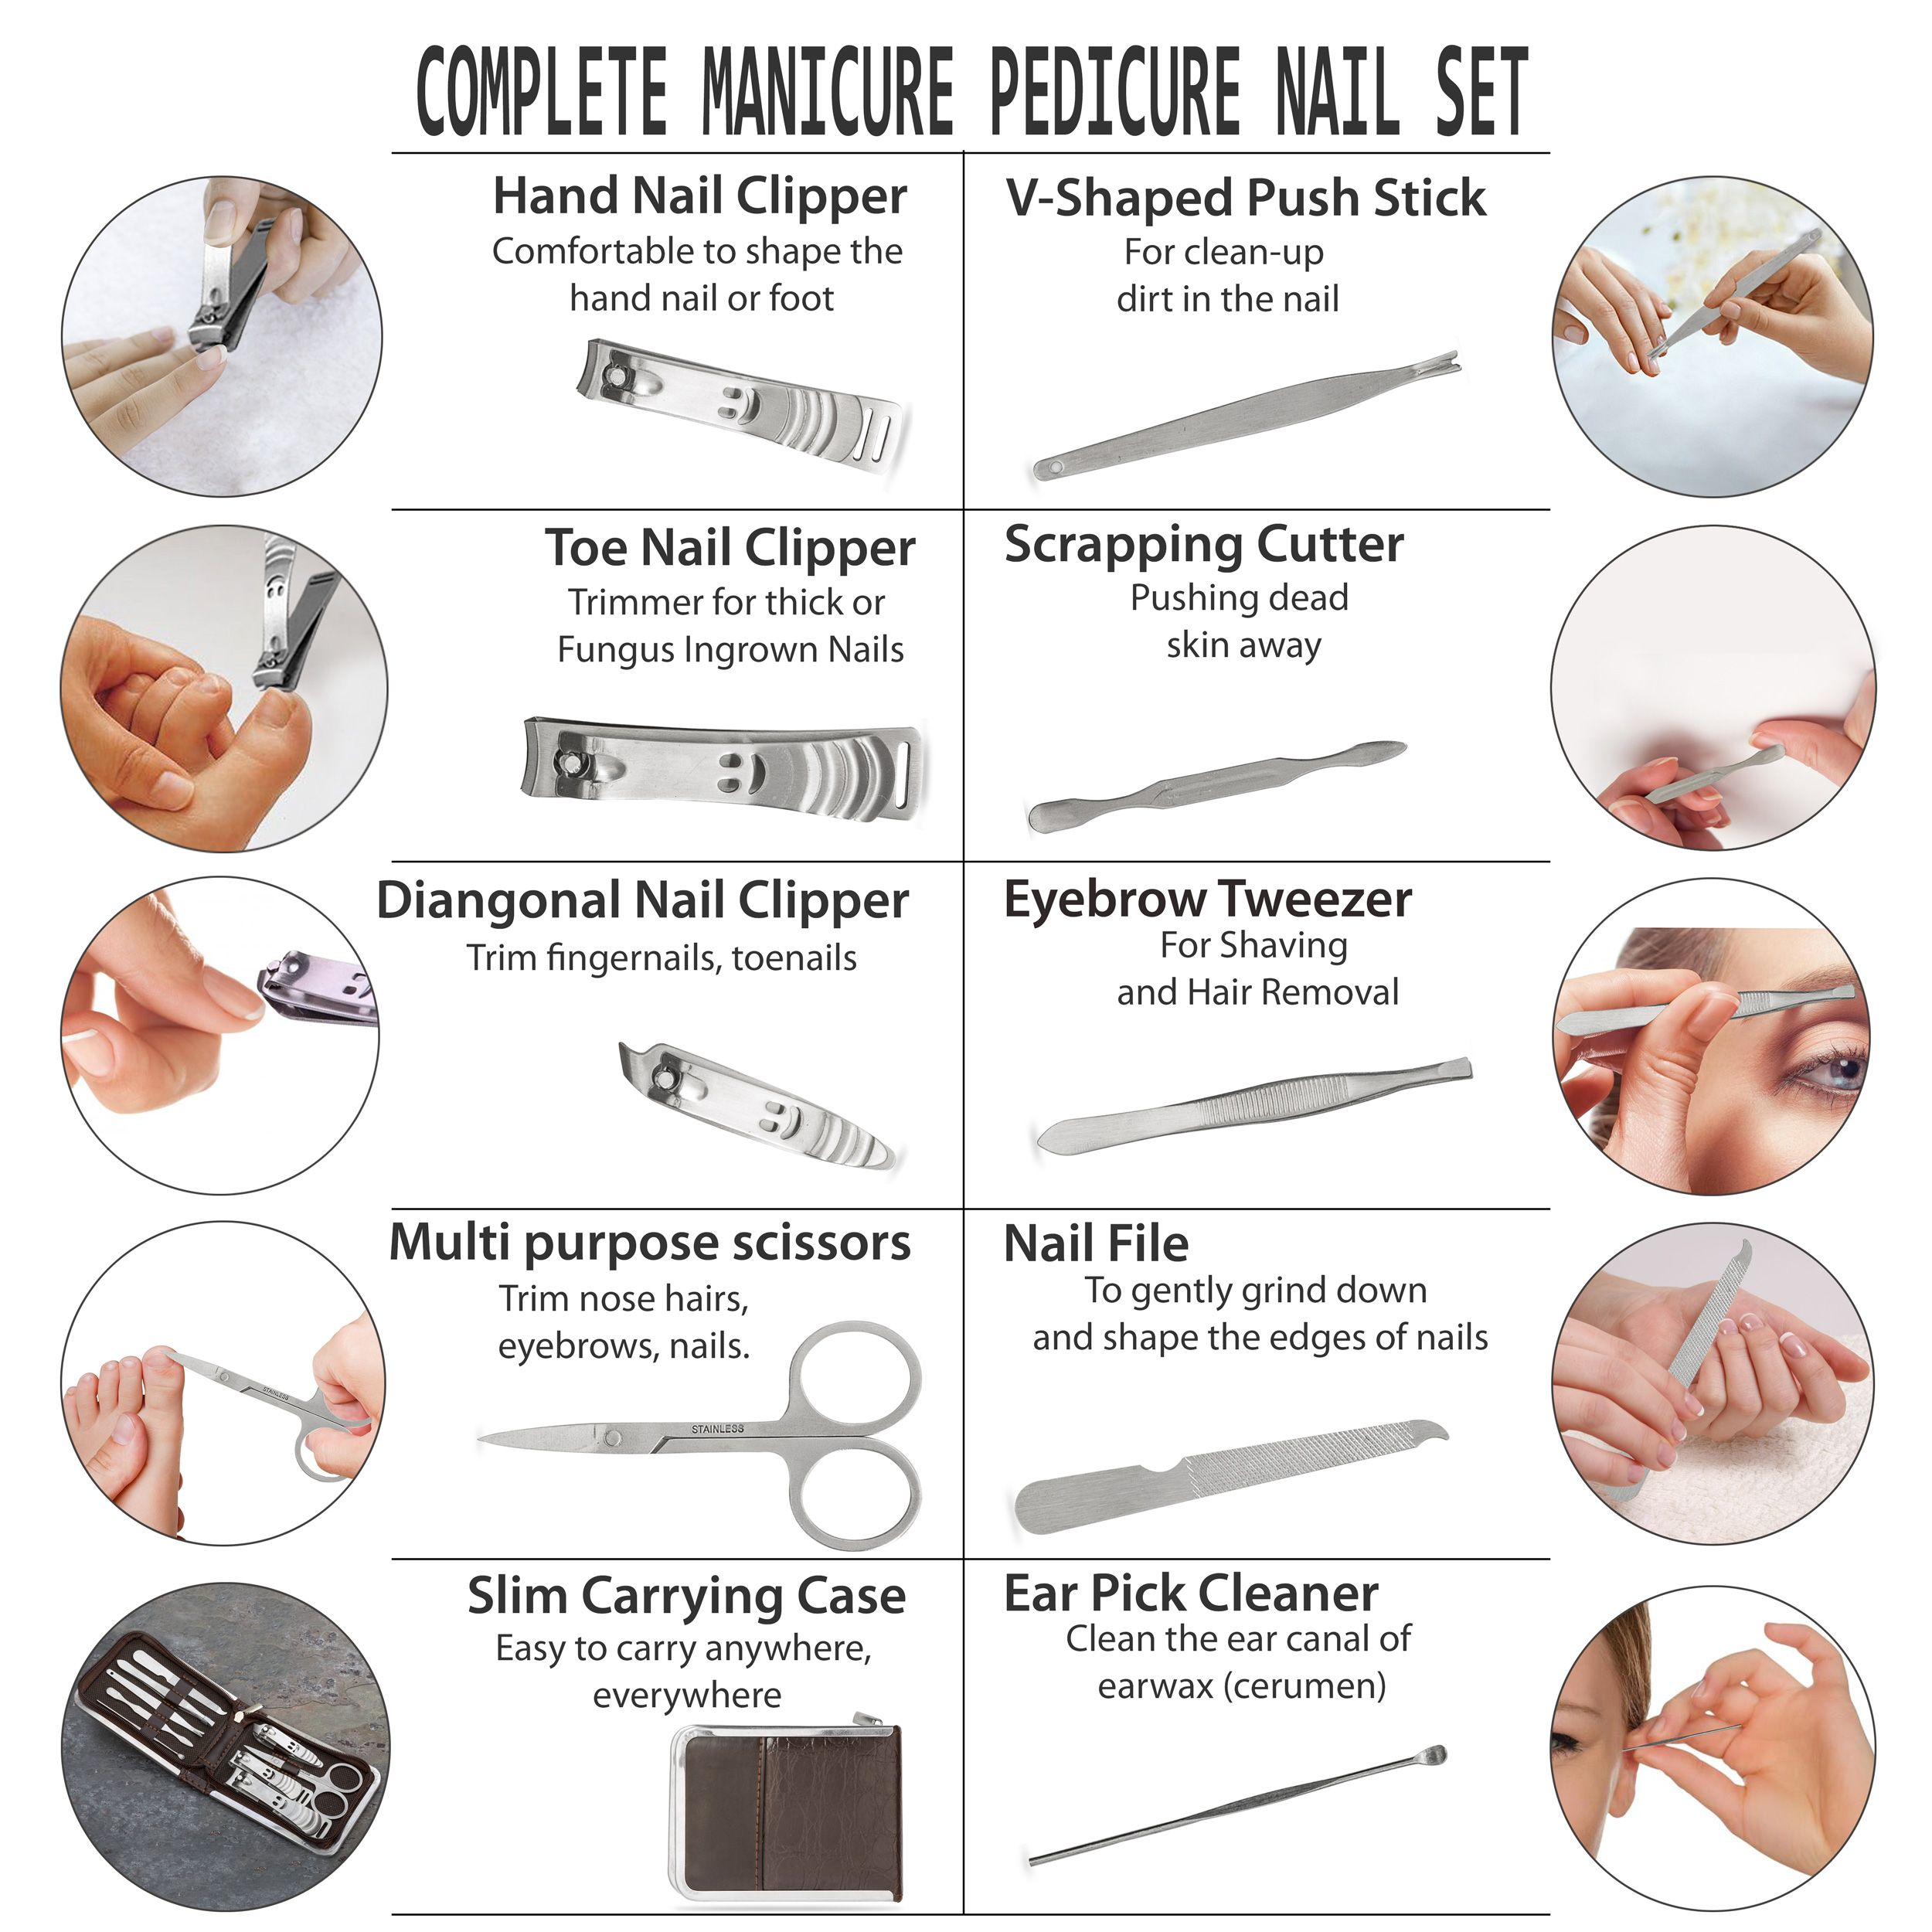 No Need To Spend A Fortune On These: TIME & MONEY SAVER: No Need To Meet Your Nail Artist's